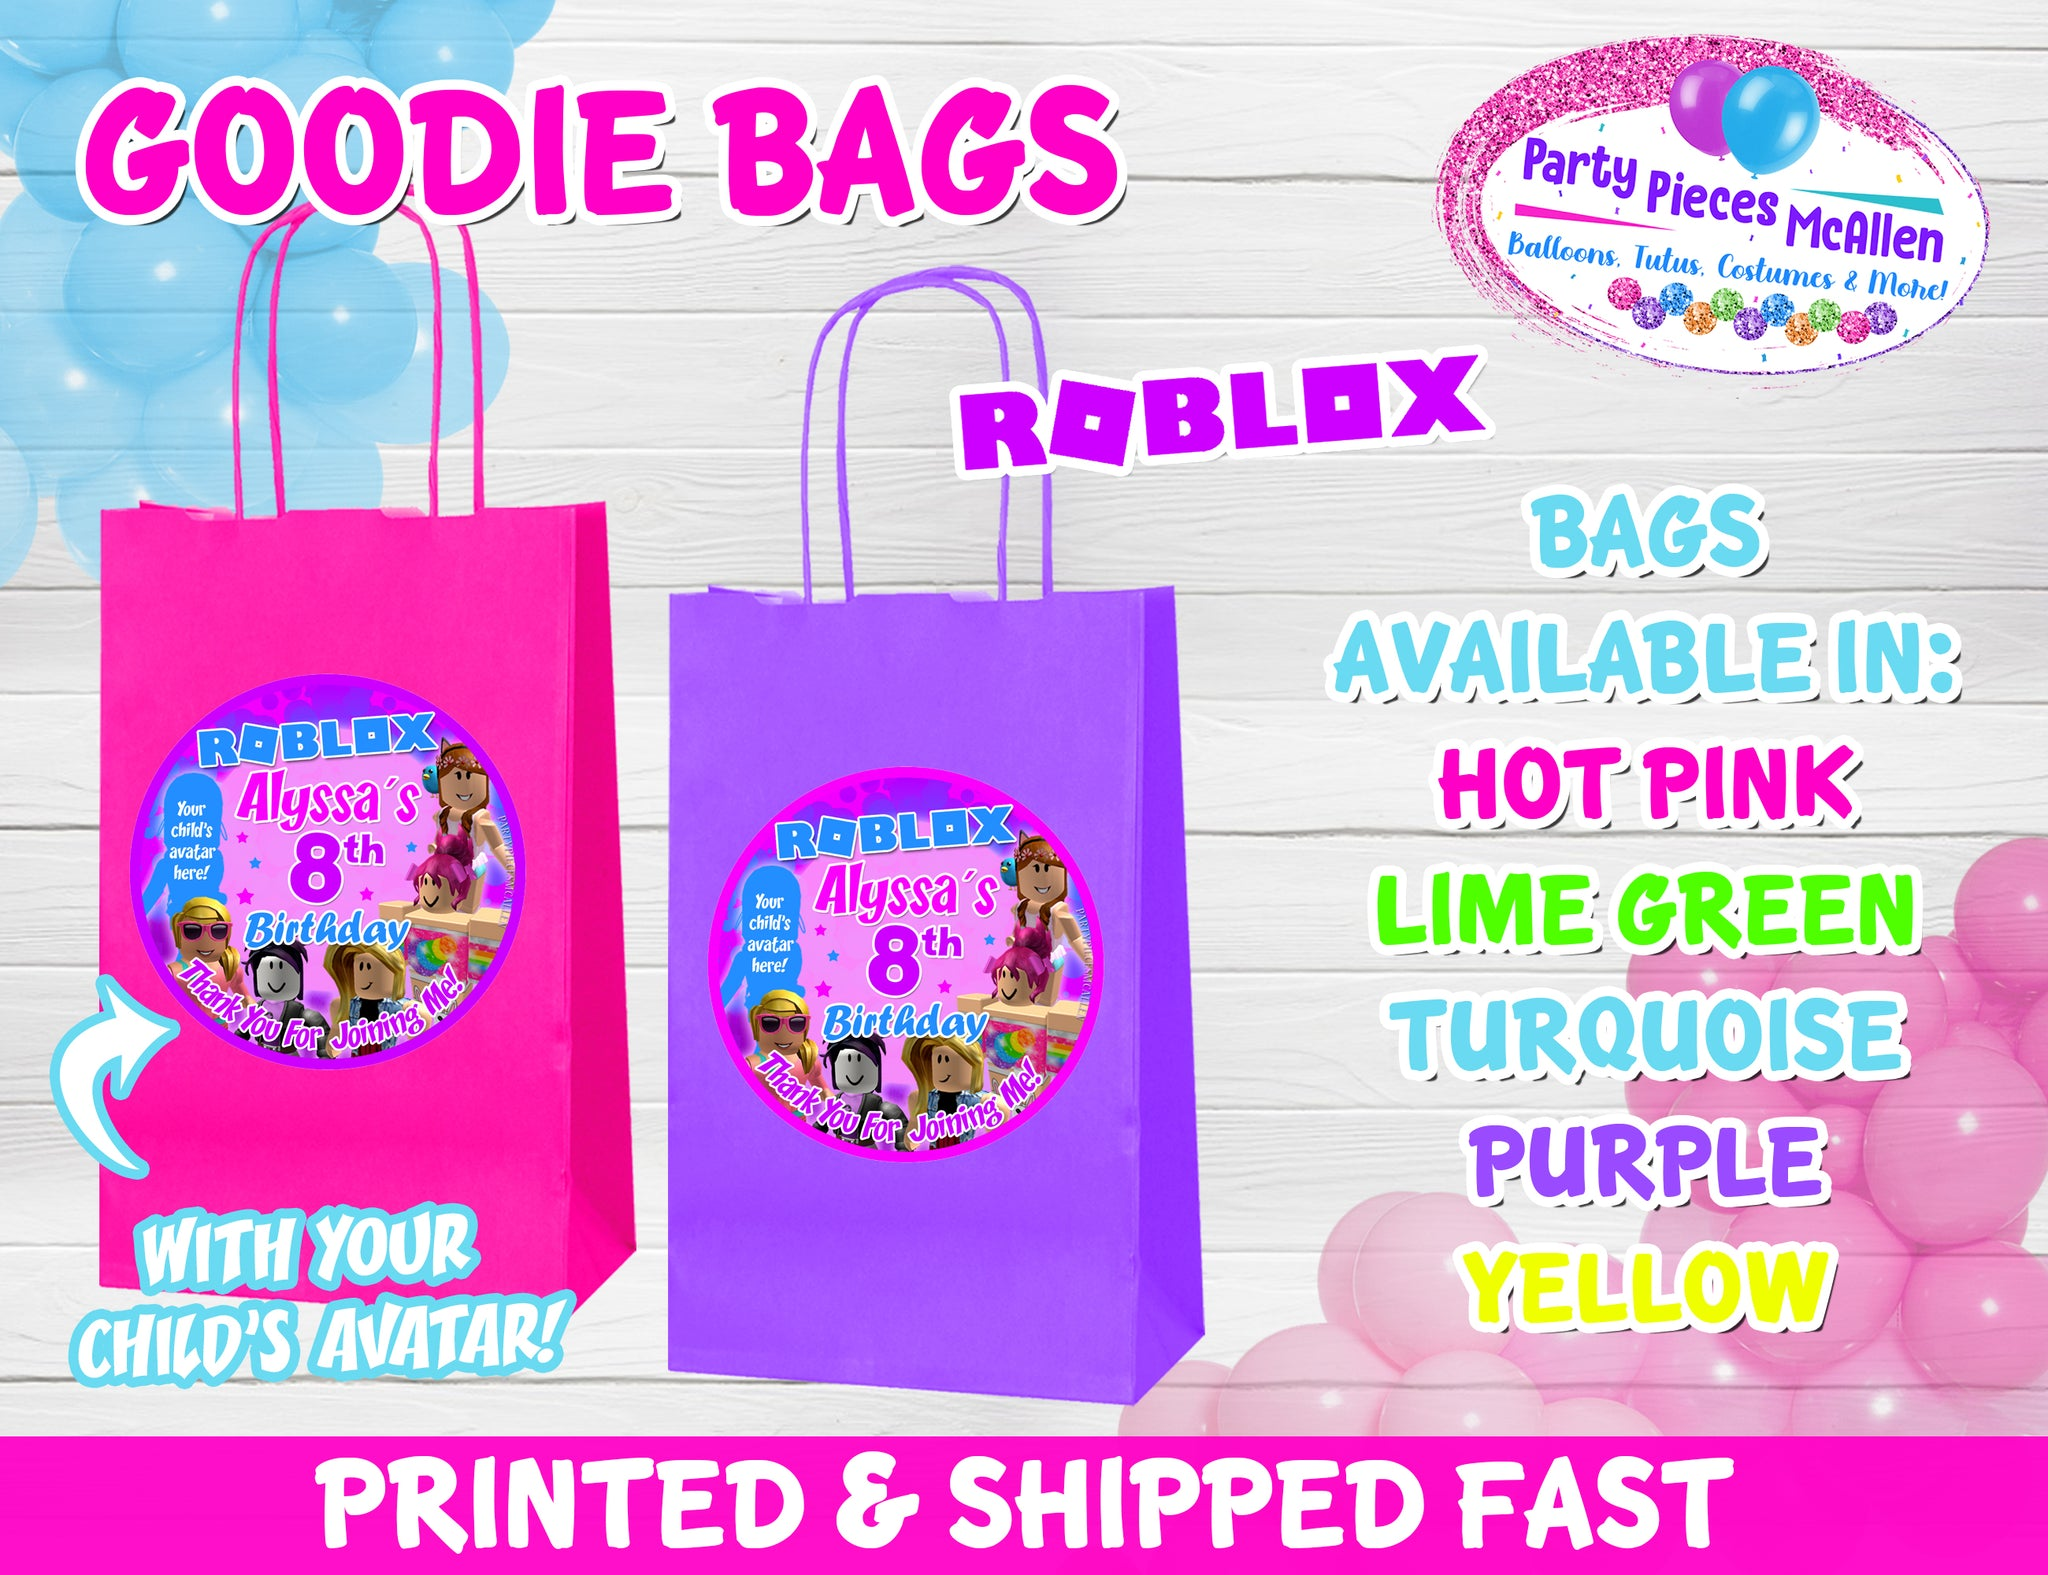 Roblox Profile Viewer Roblox Girl Goodie Bags With Your Child S Avatar Party Pieces Mcallen